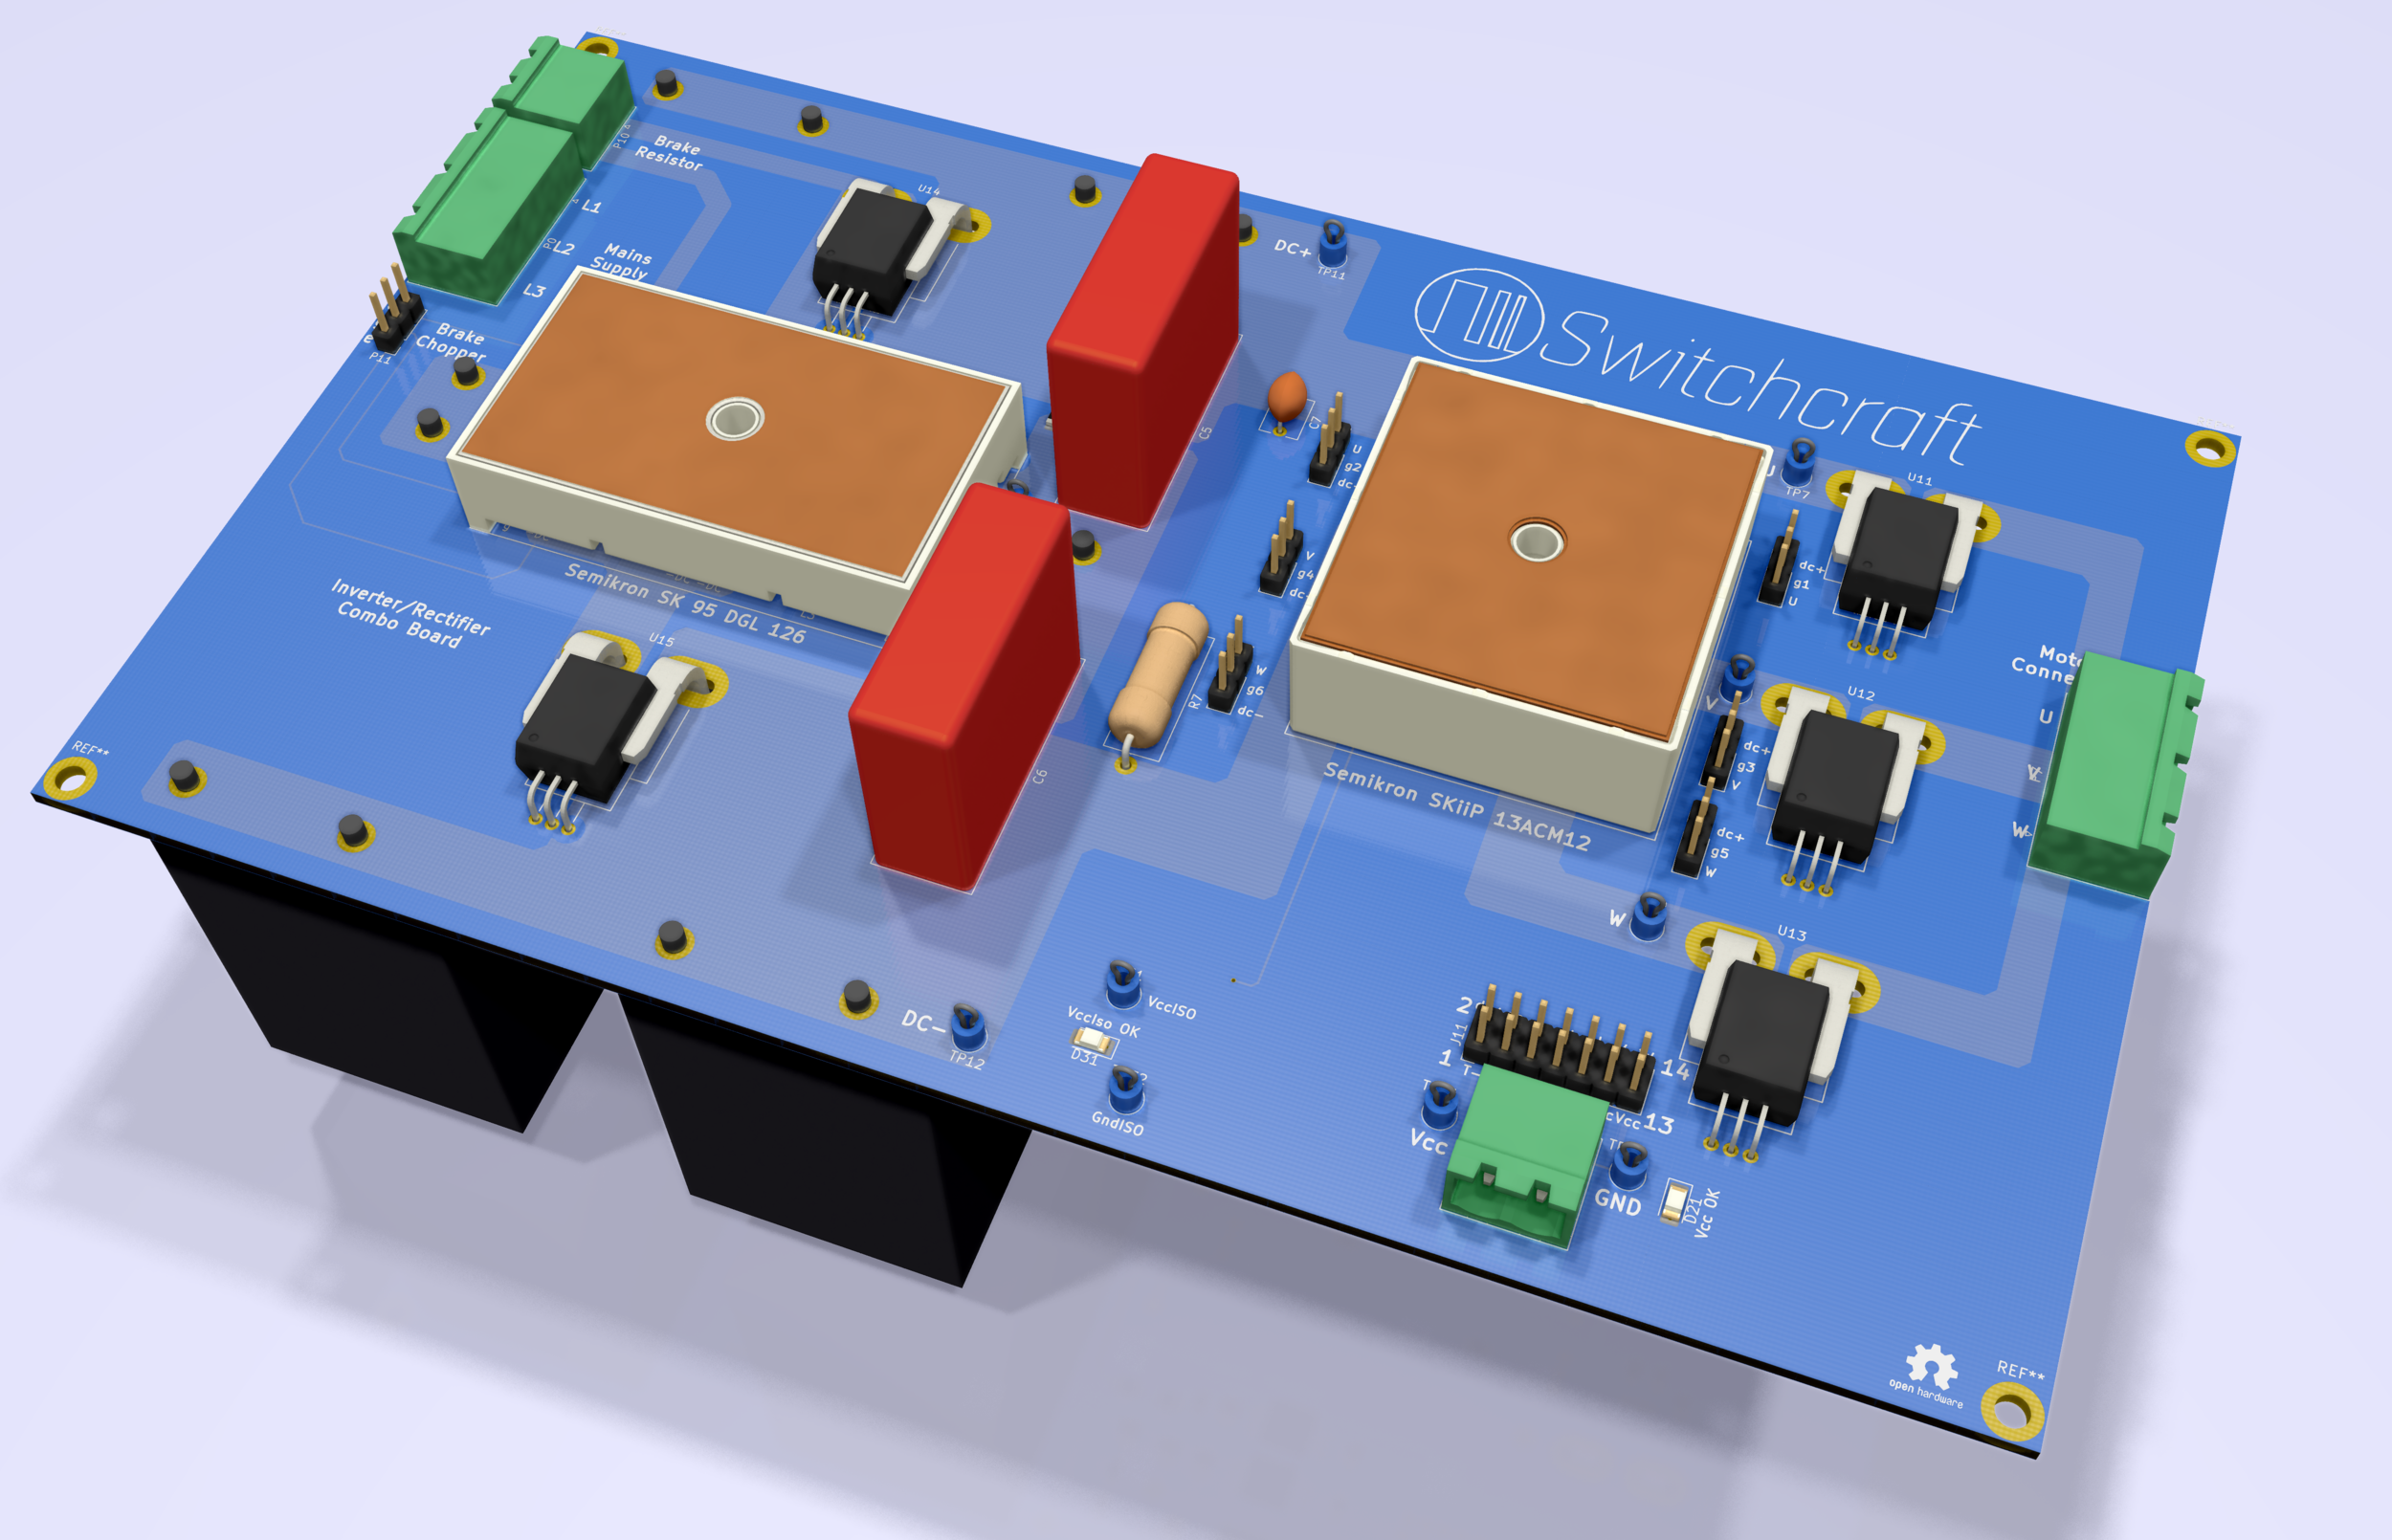 Top view 3D-render. The rectangle to the left is the rectifier with a current sensor above and below. The two red office-building-like components are snubber capacitors. The black boxes on the bottom side are main DC-link capacitors while the square, white box with a copper roof at the right is the SiC transistor module with three current sensors sitting next to it.